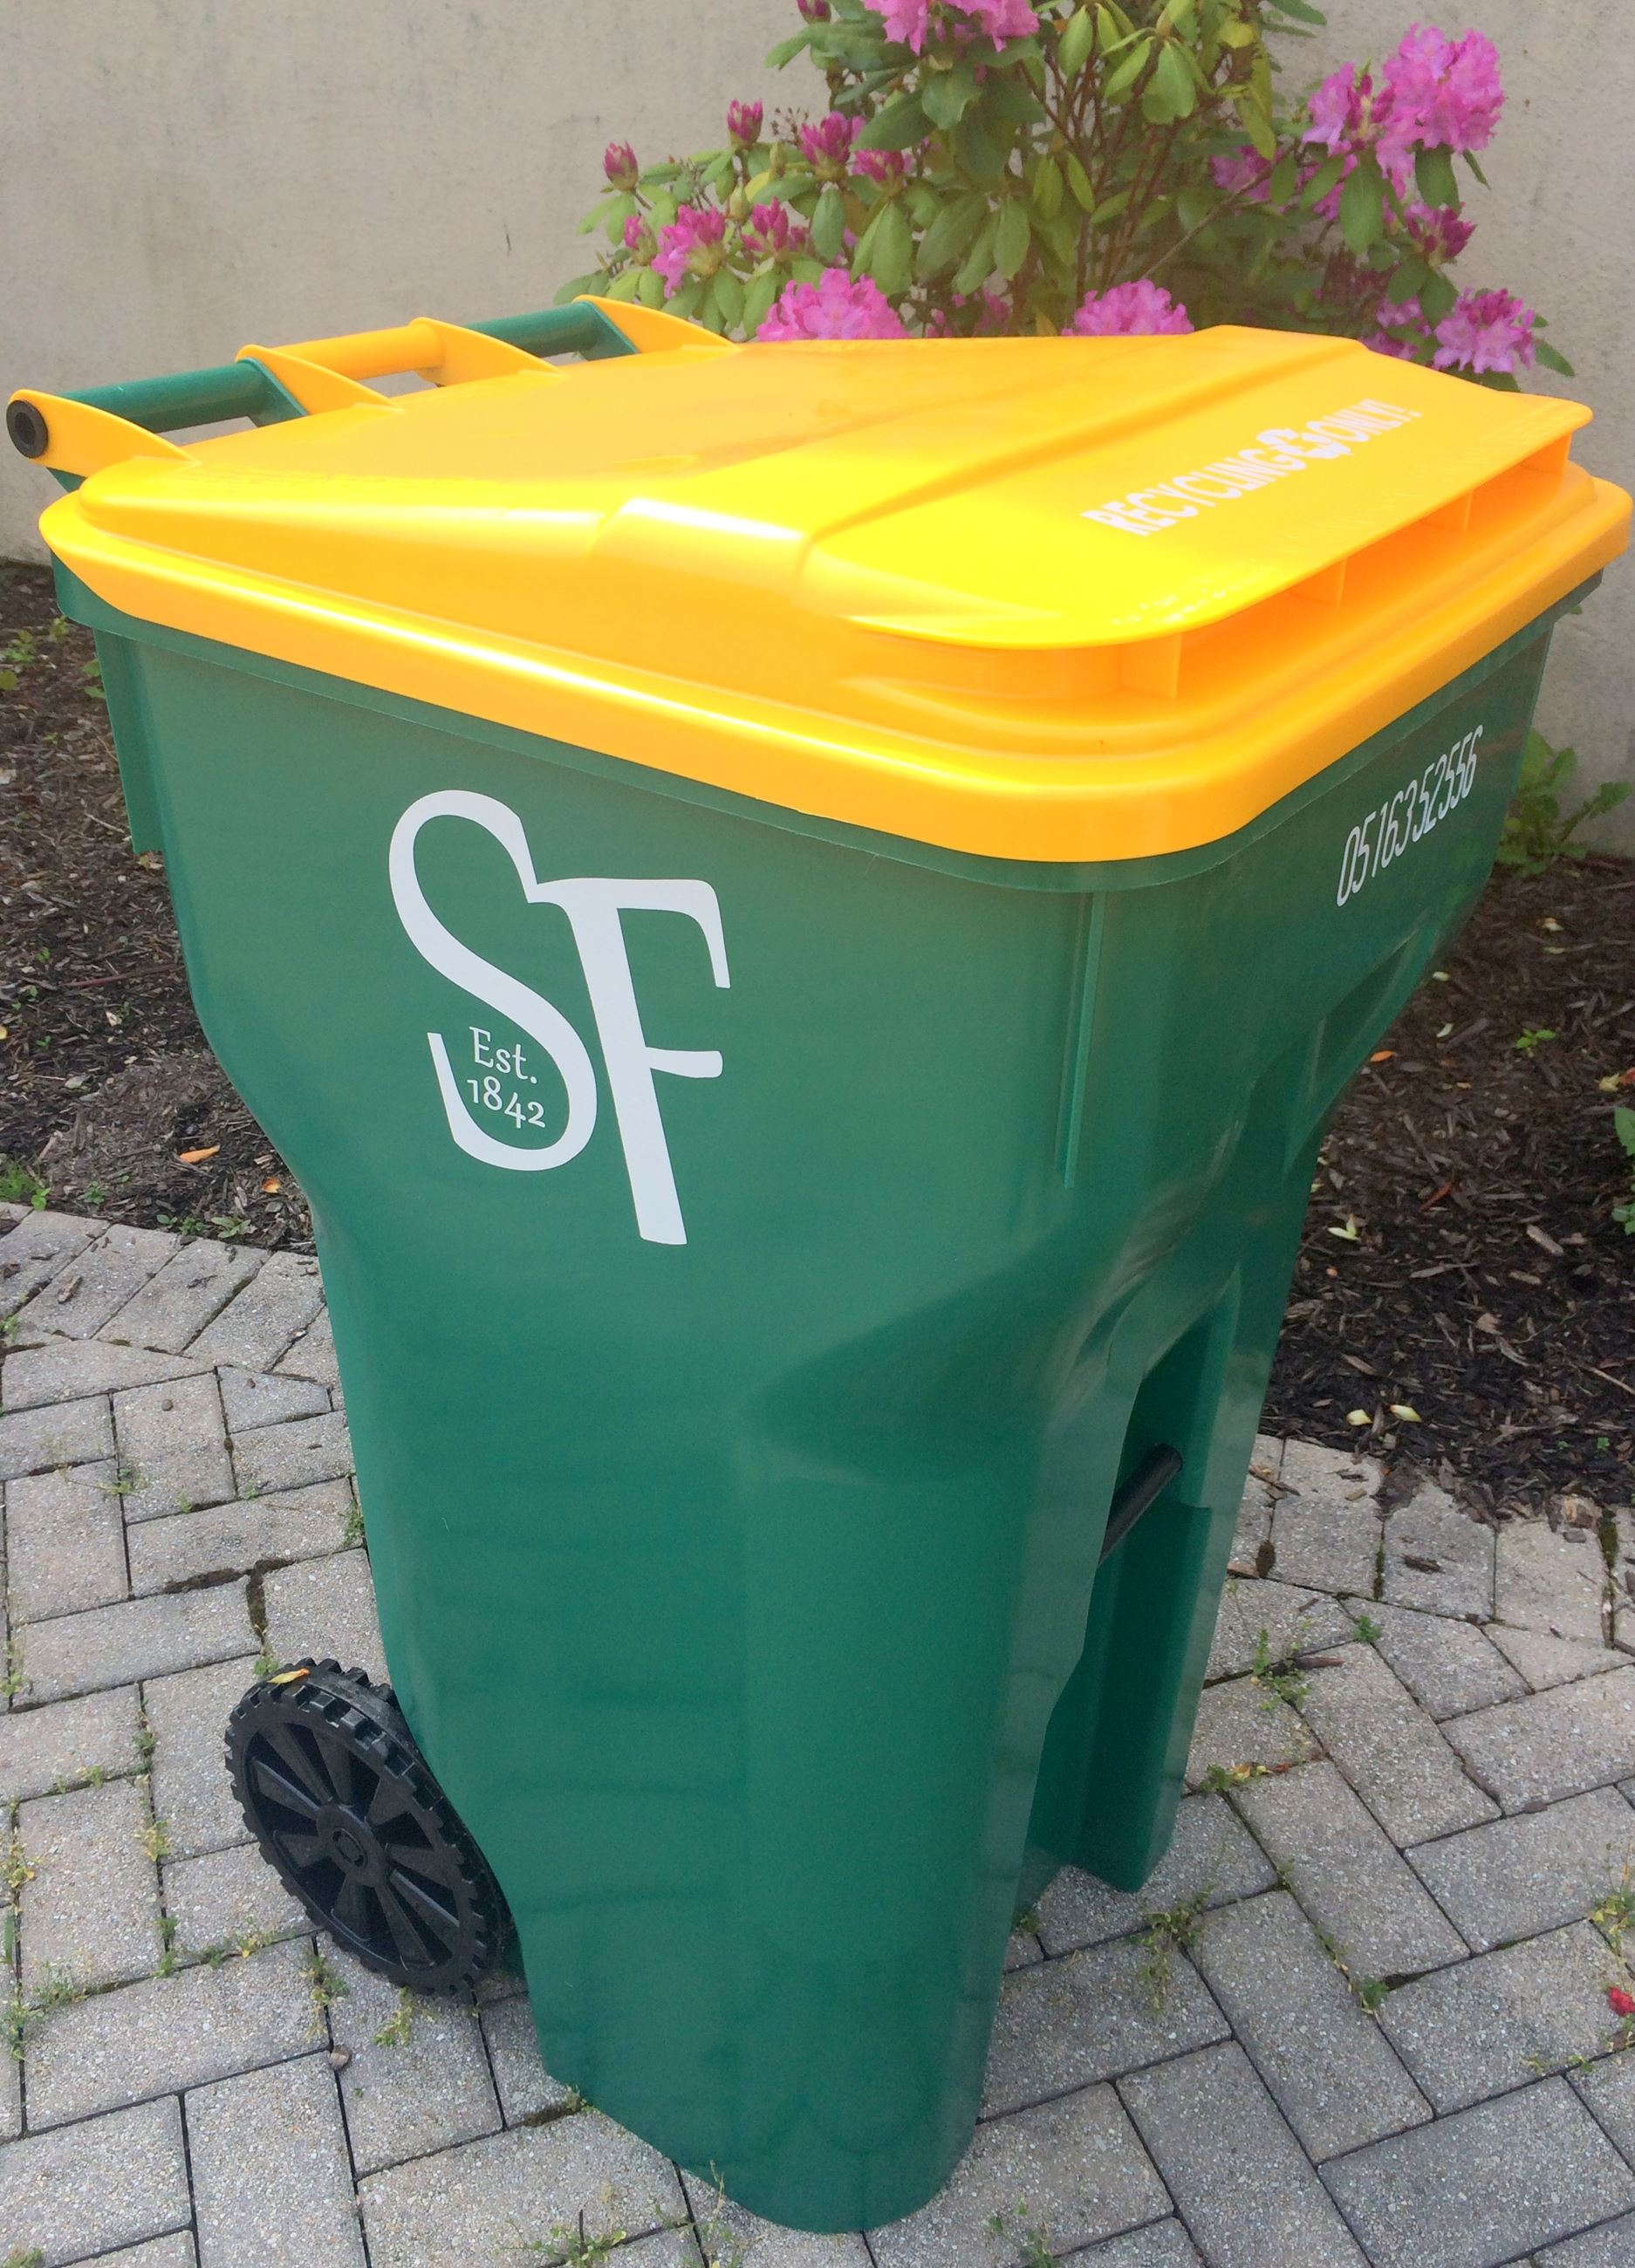 New recycling cart photo